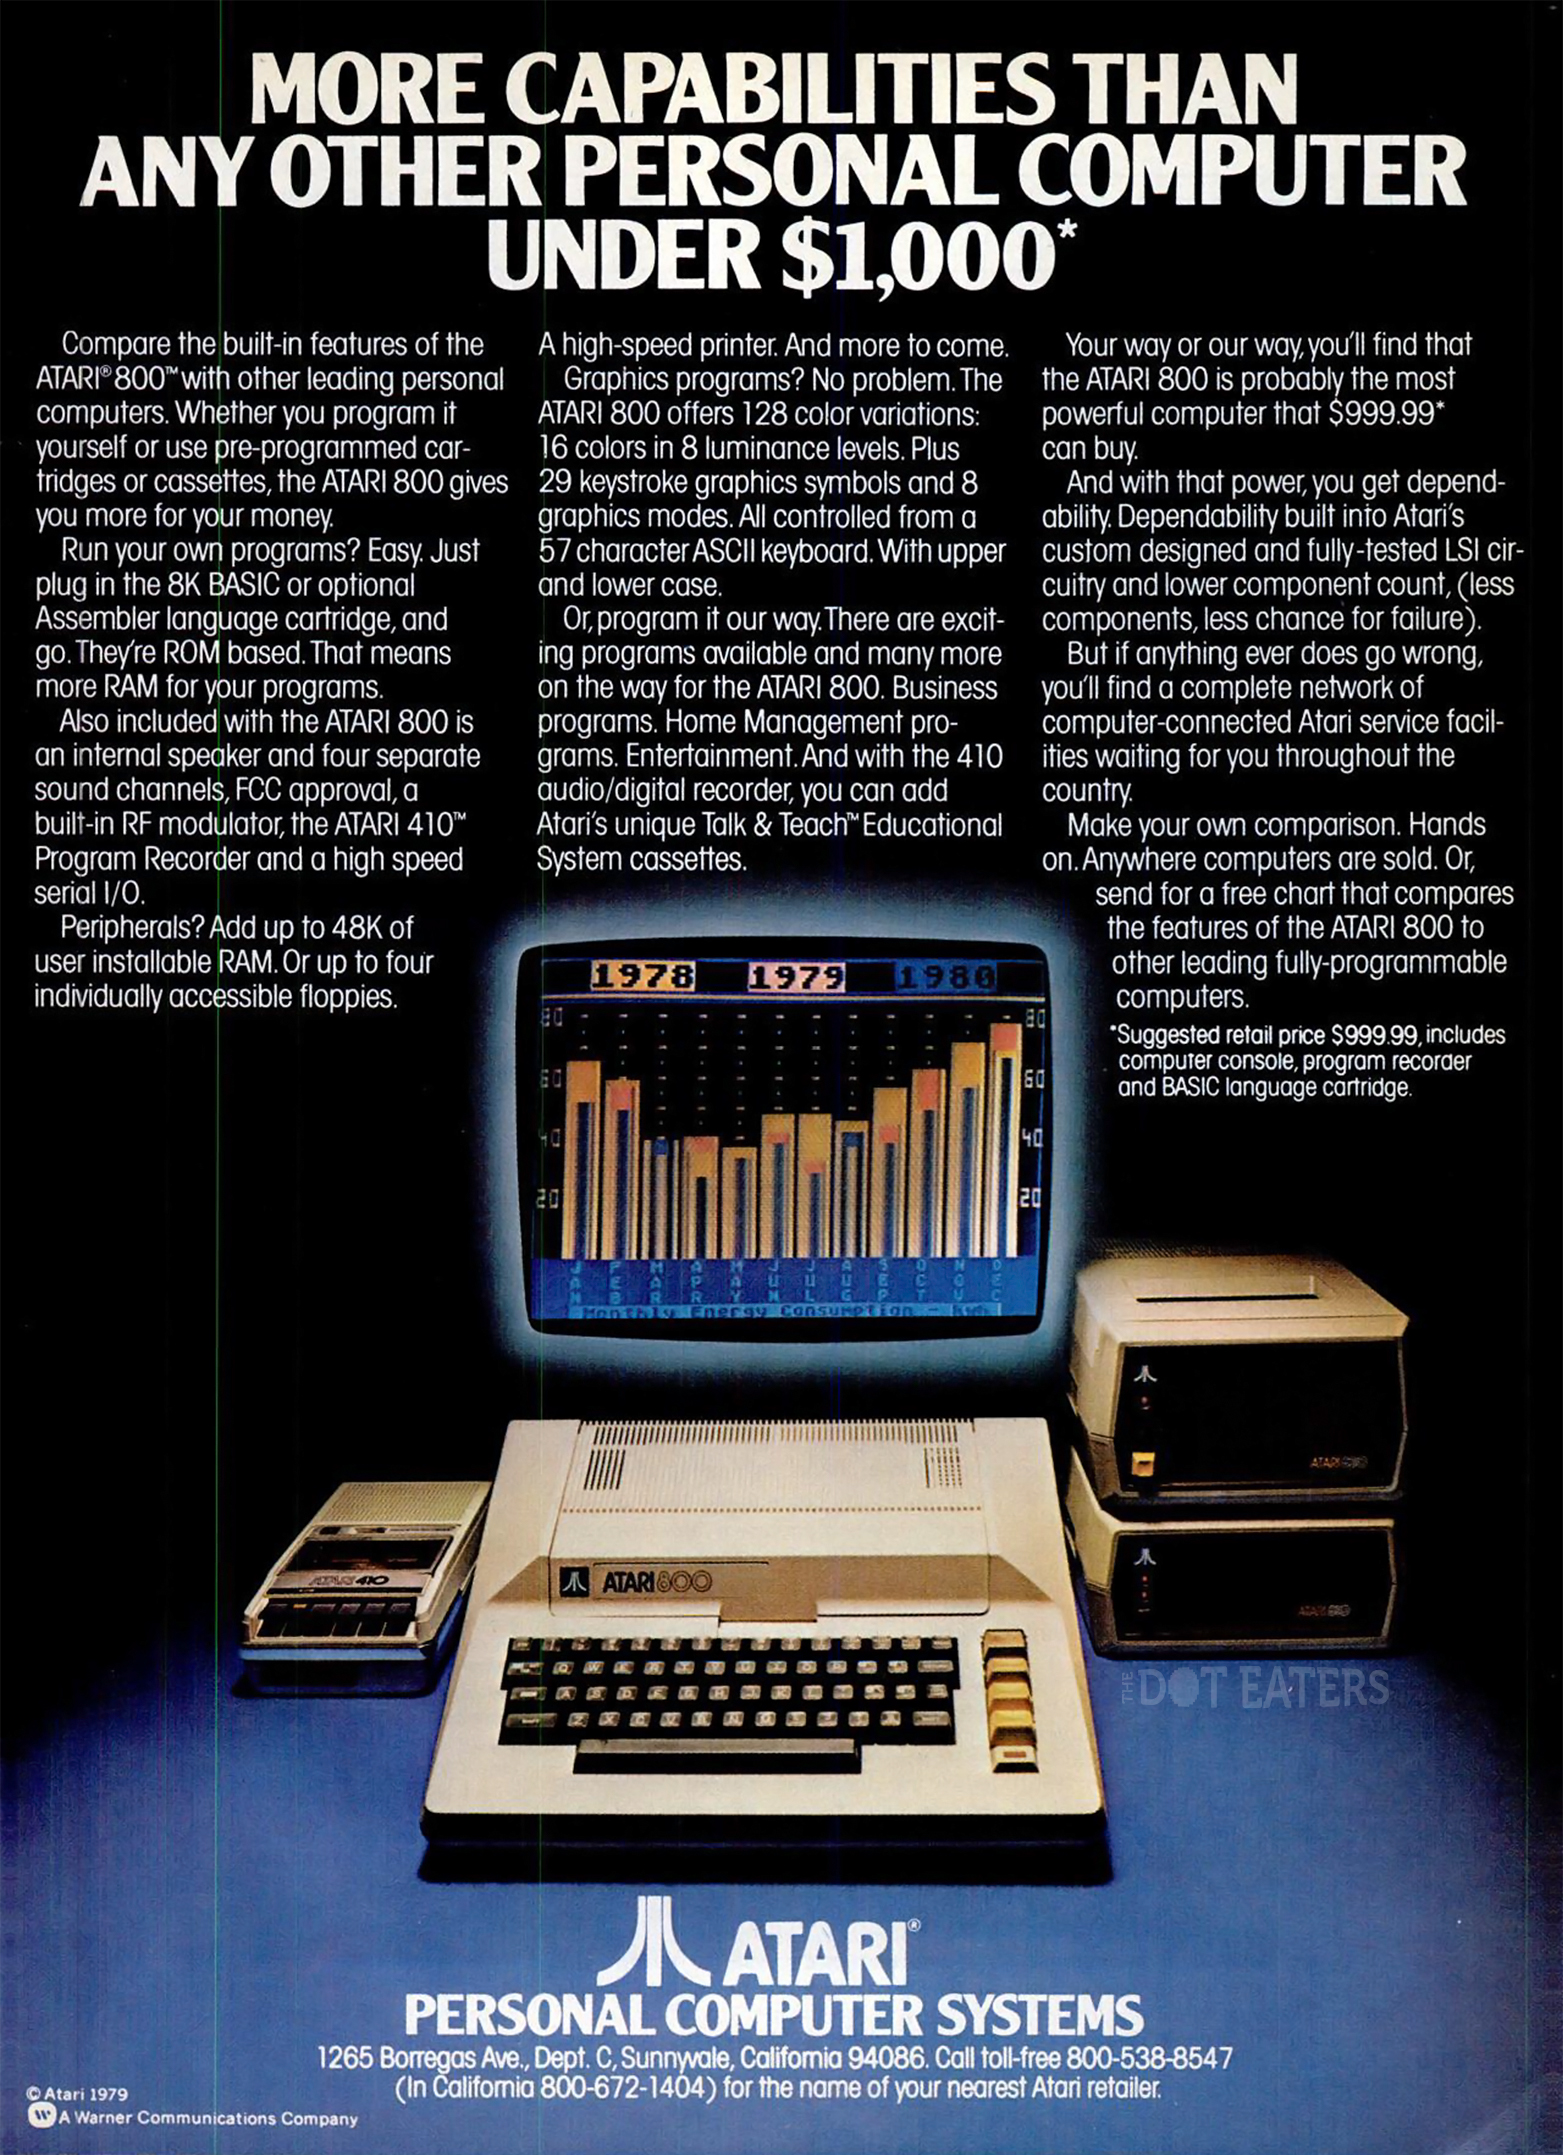 Ad for the 800 computer, by video game maker Atari